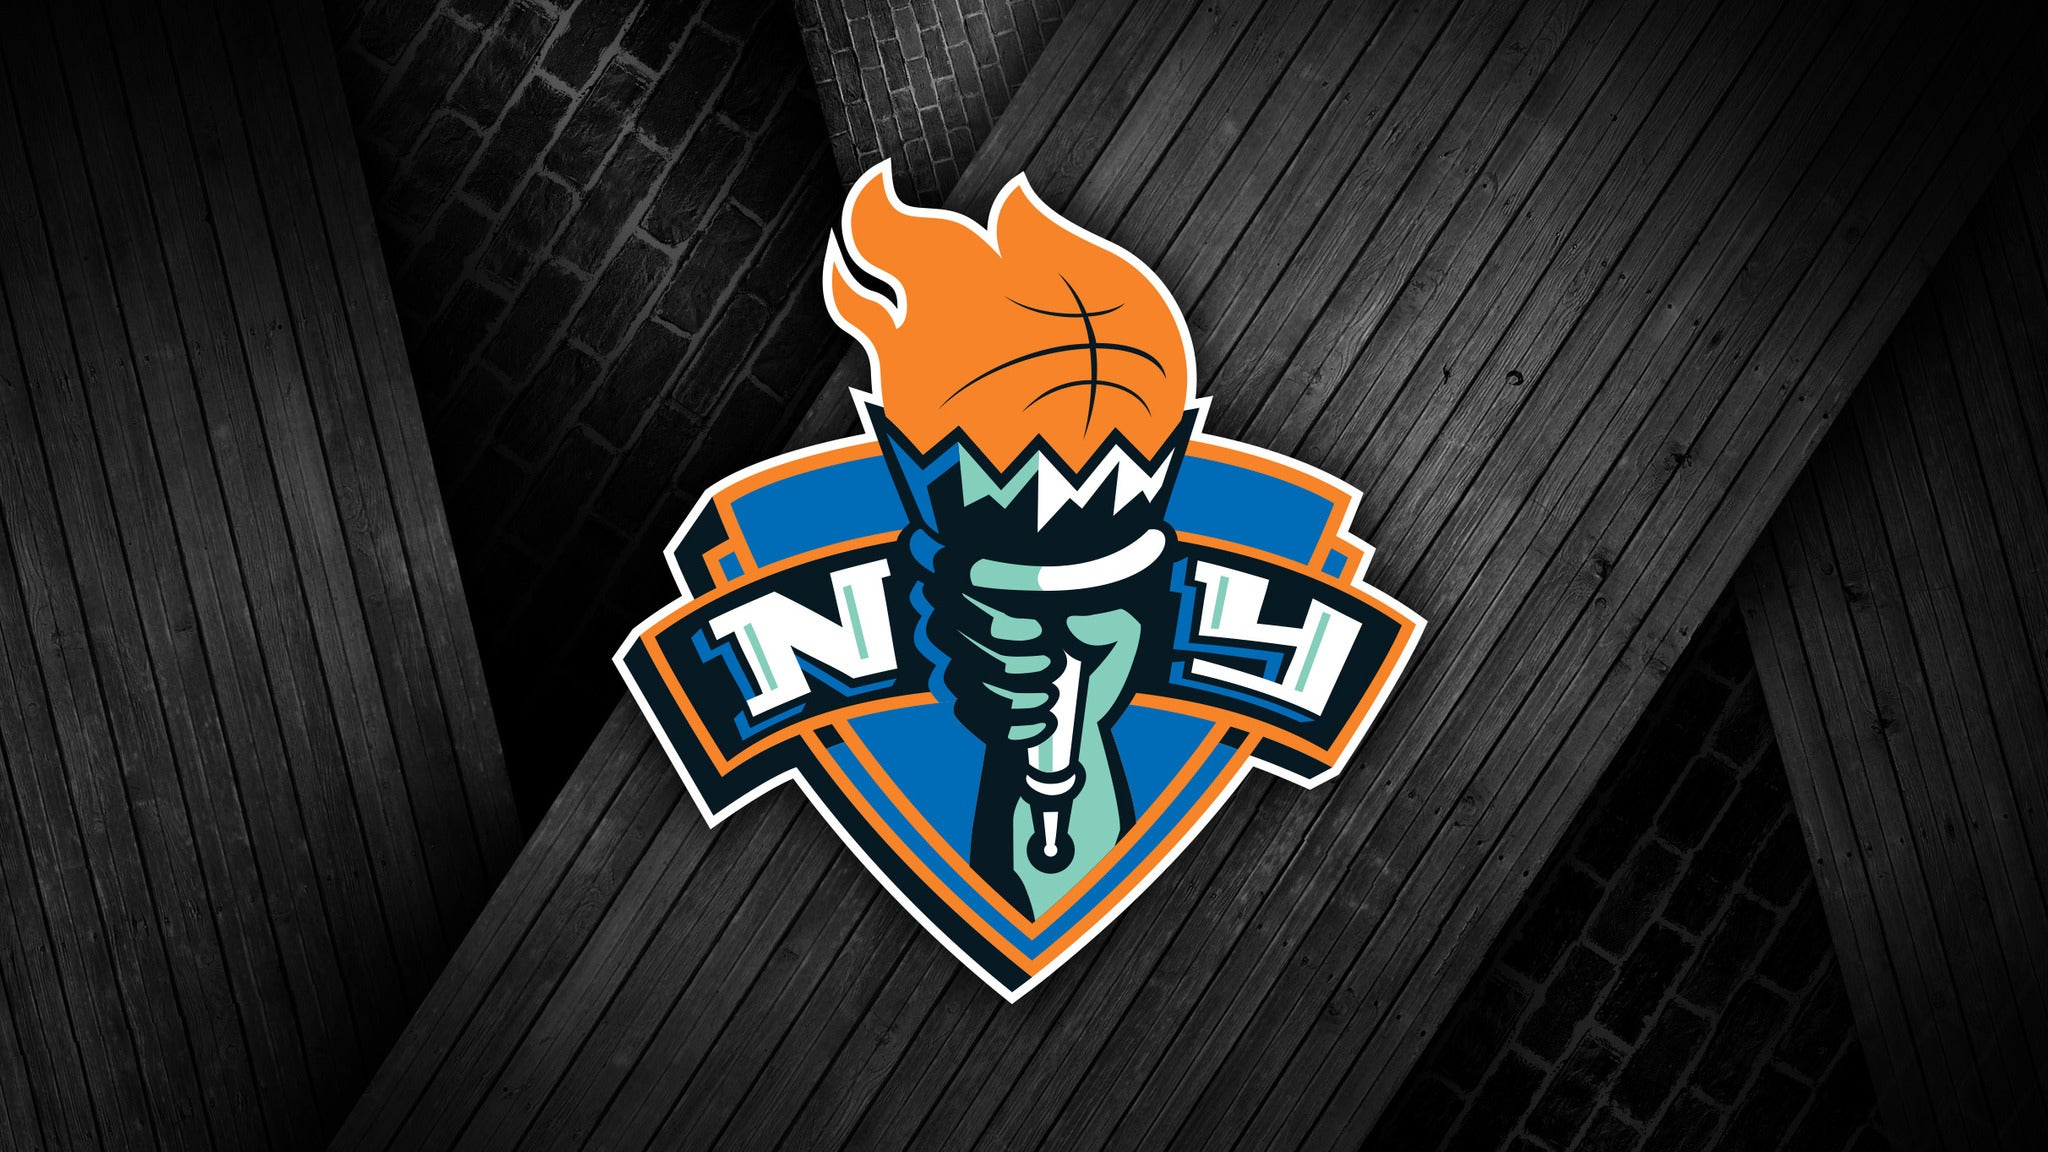 New York Liberty vs. Connecticut Sun